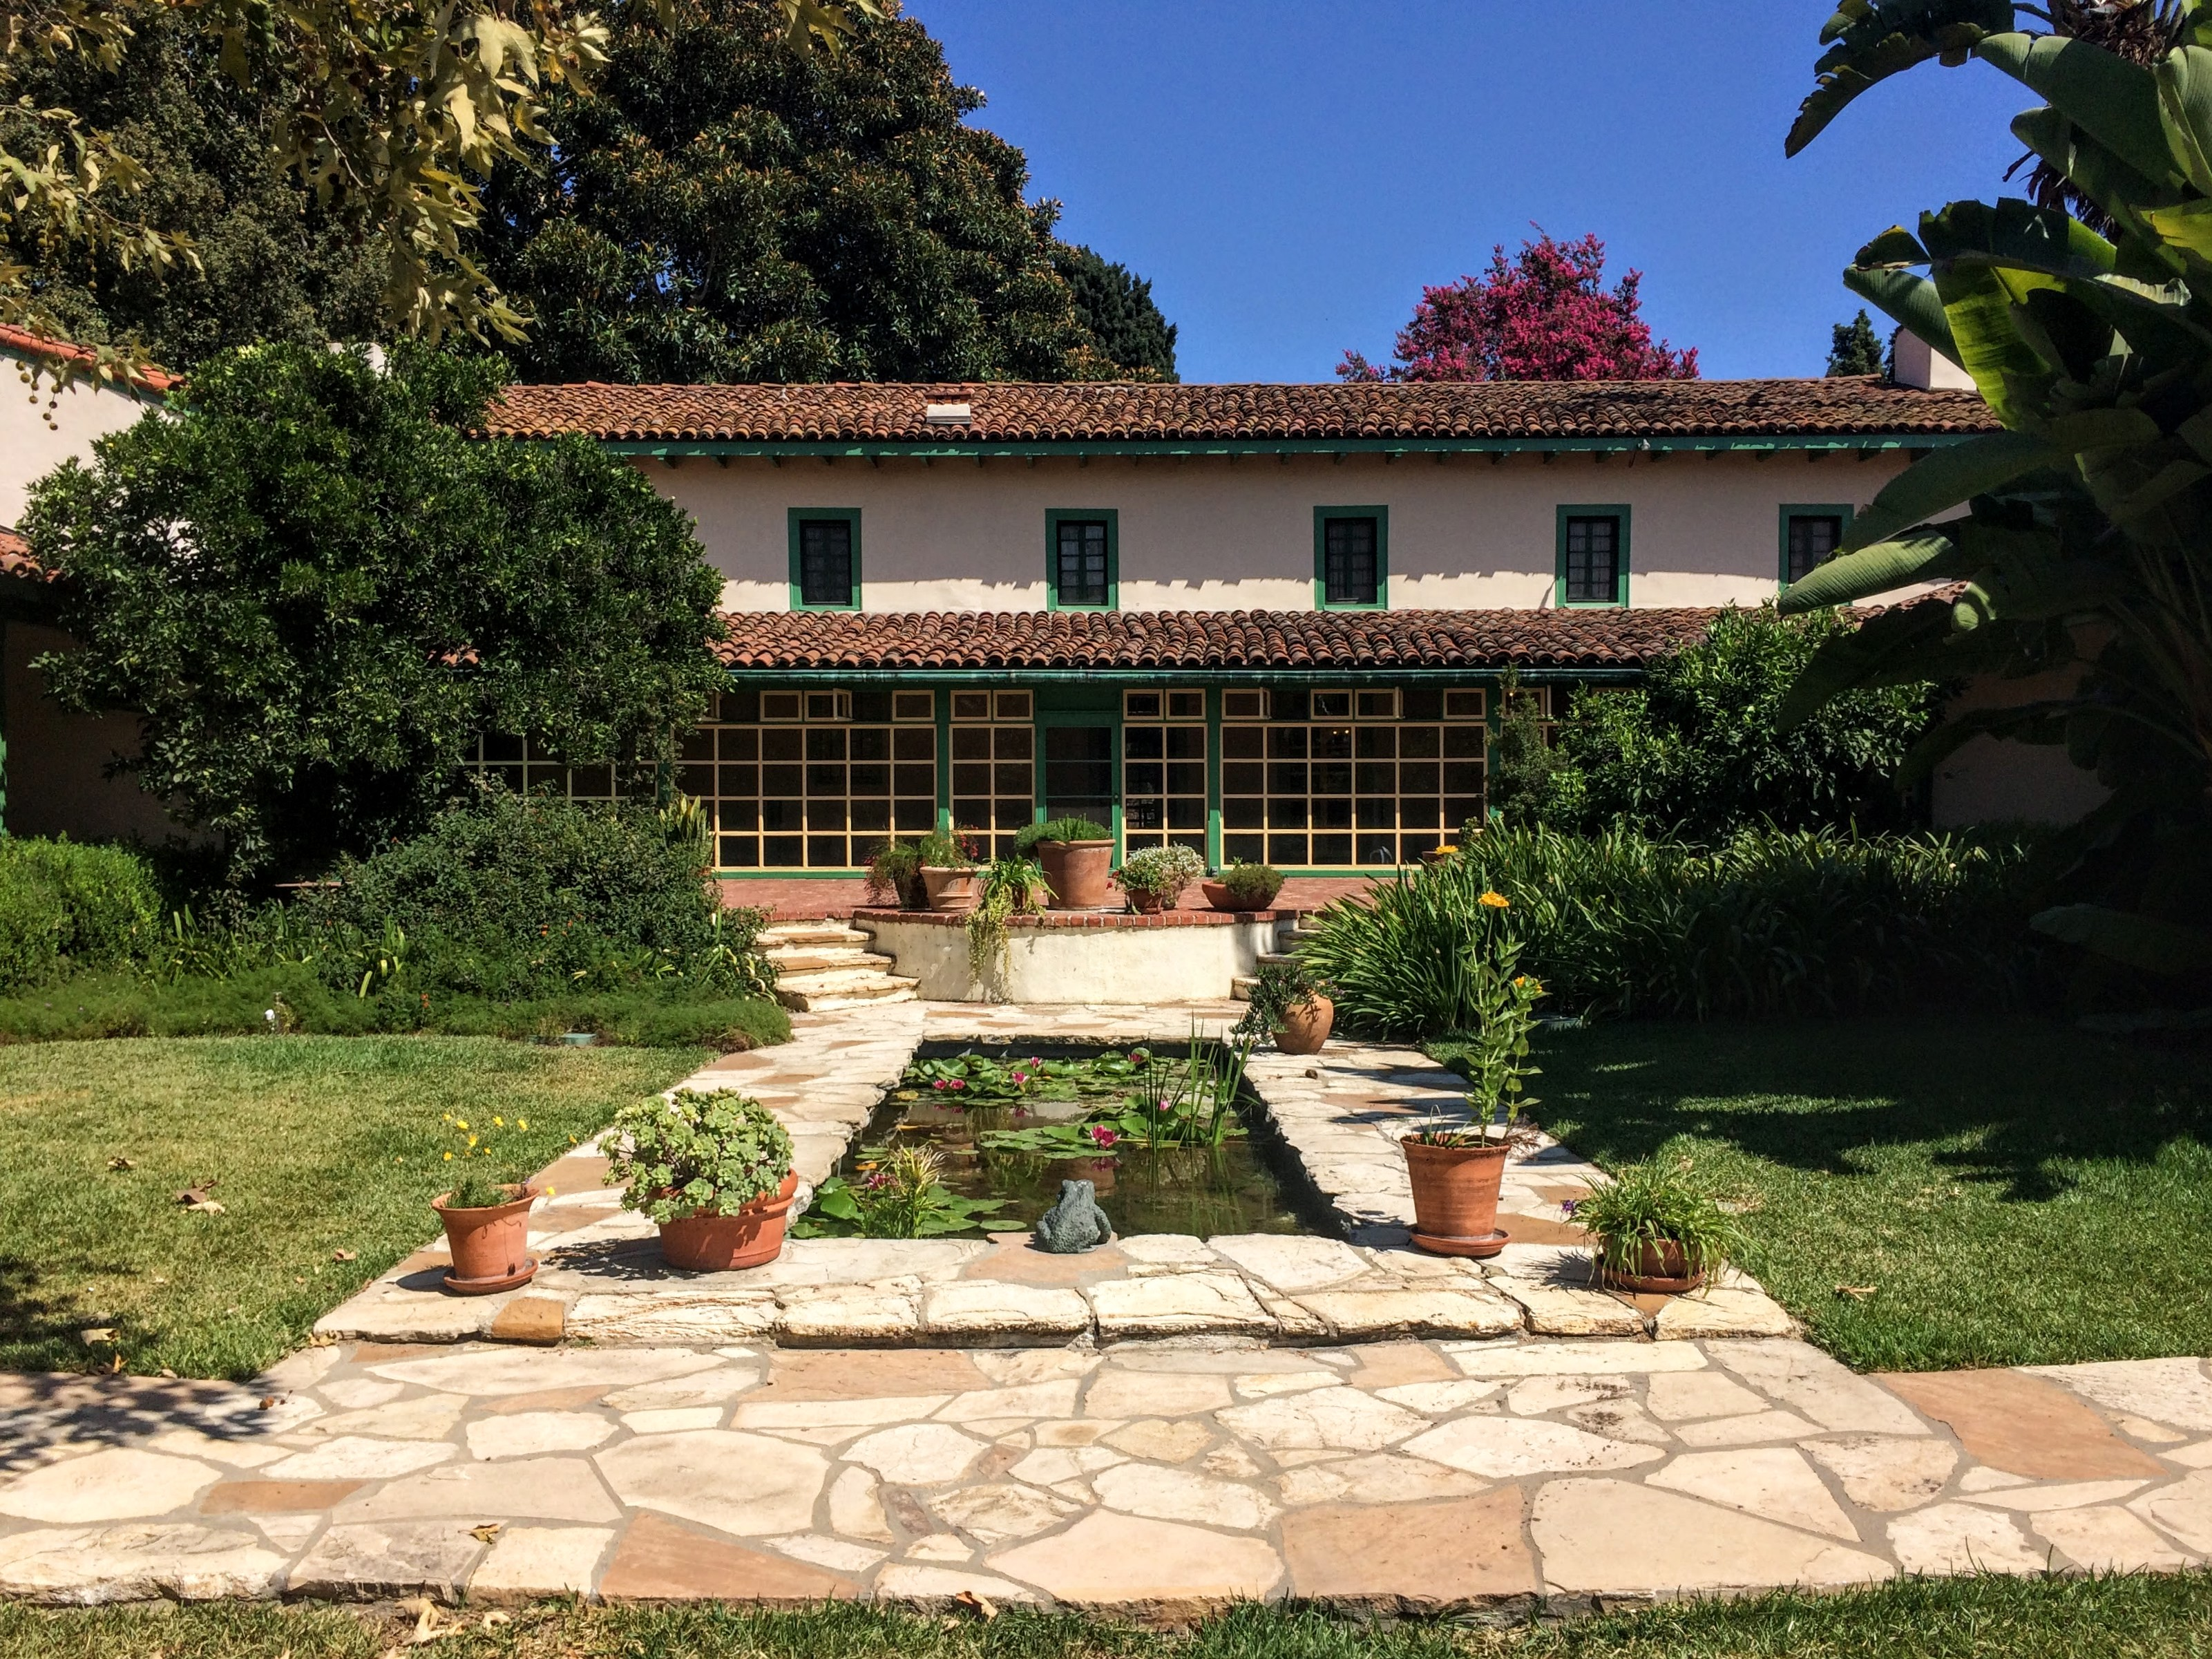 A Glimpse into the Past at Rancho Los Cerritos